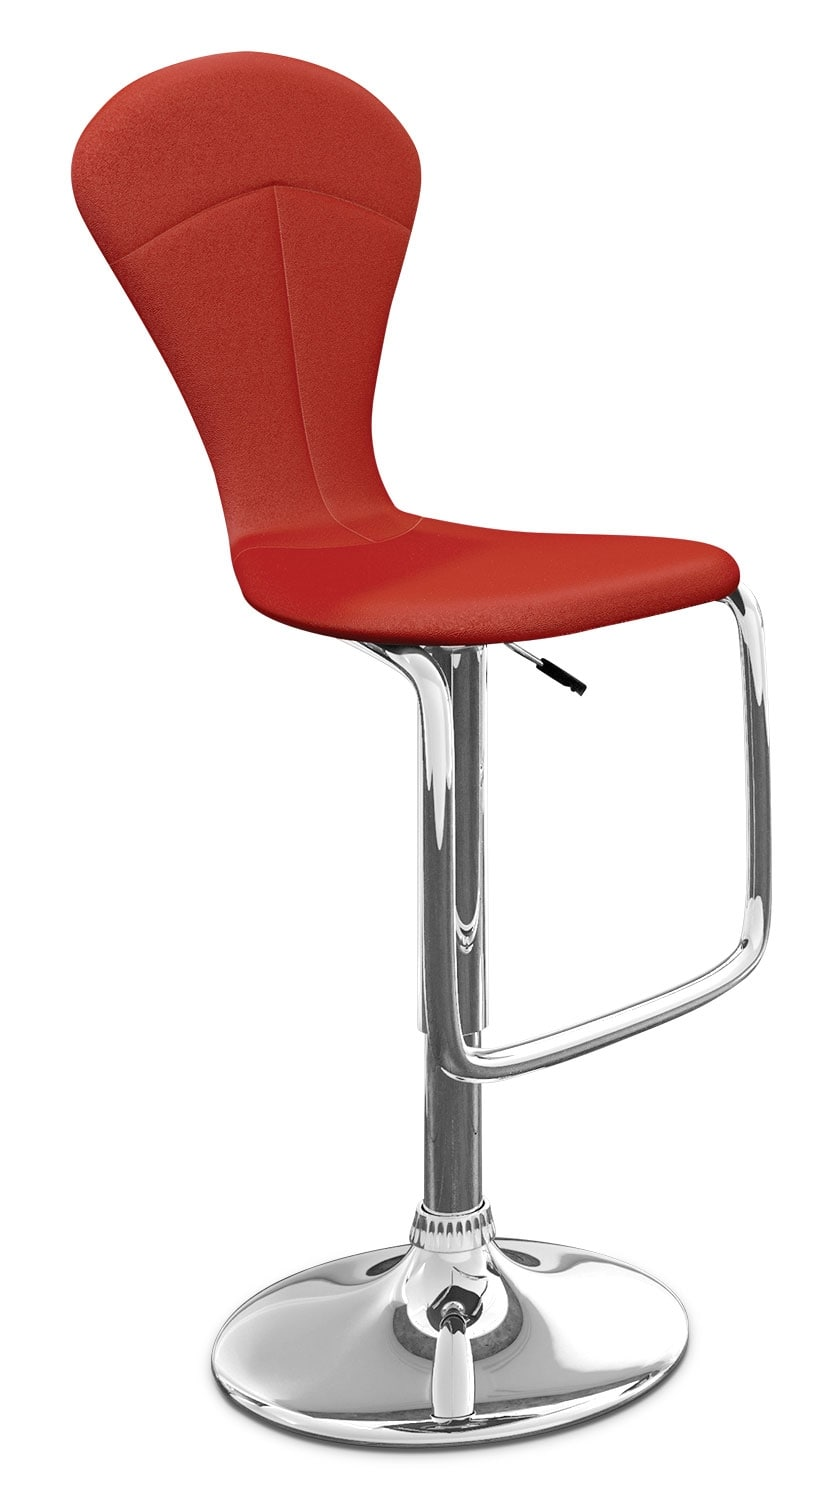 Dining Room Furniture - CorLiving Tapered Full-Back Adjustable Bar Stool - Red